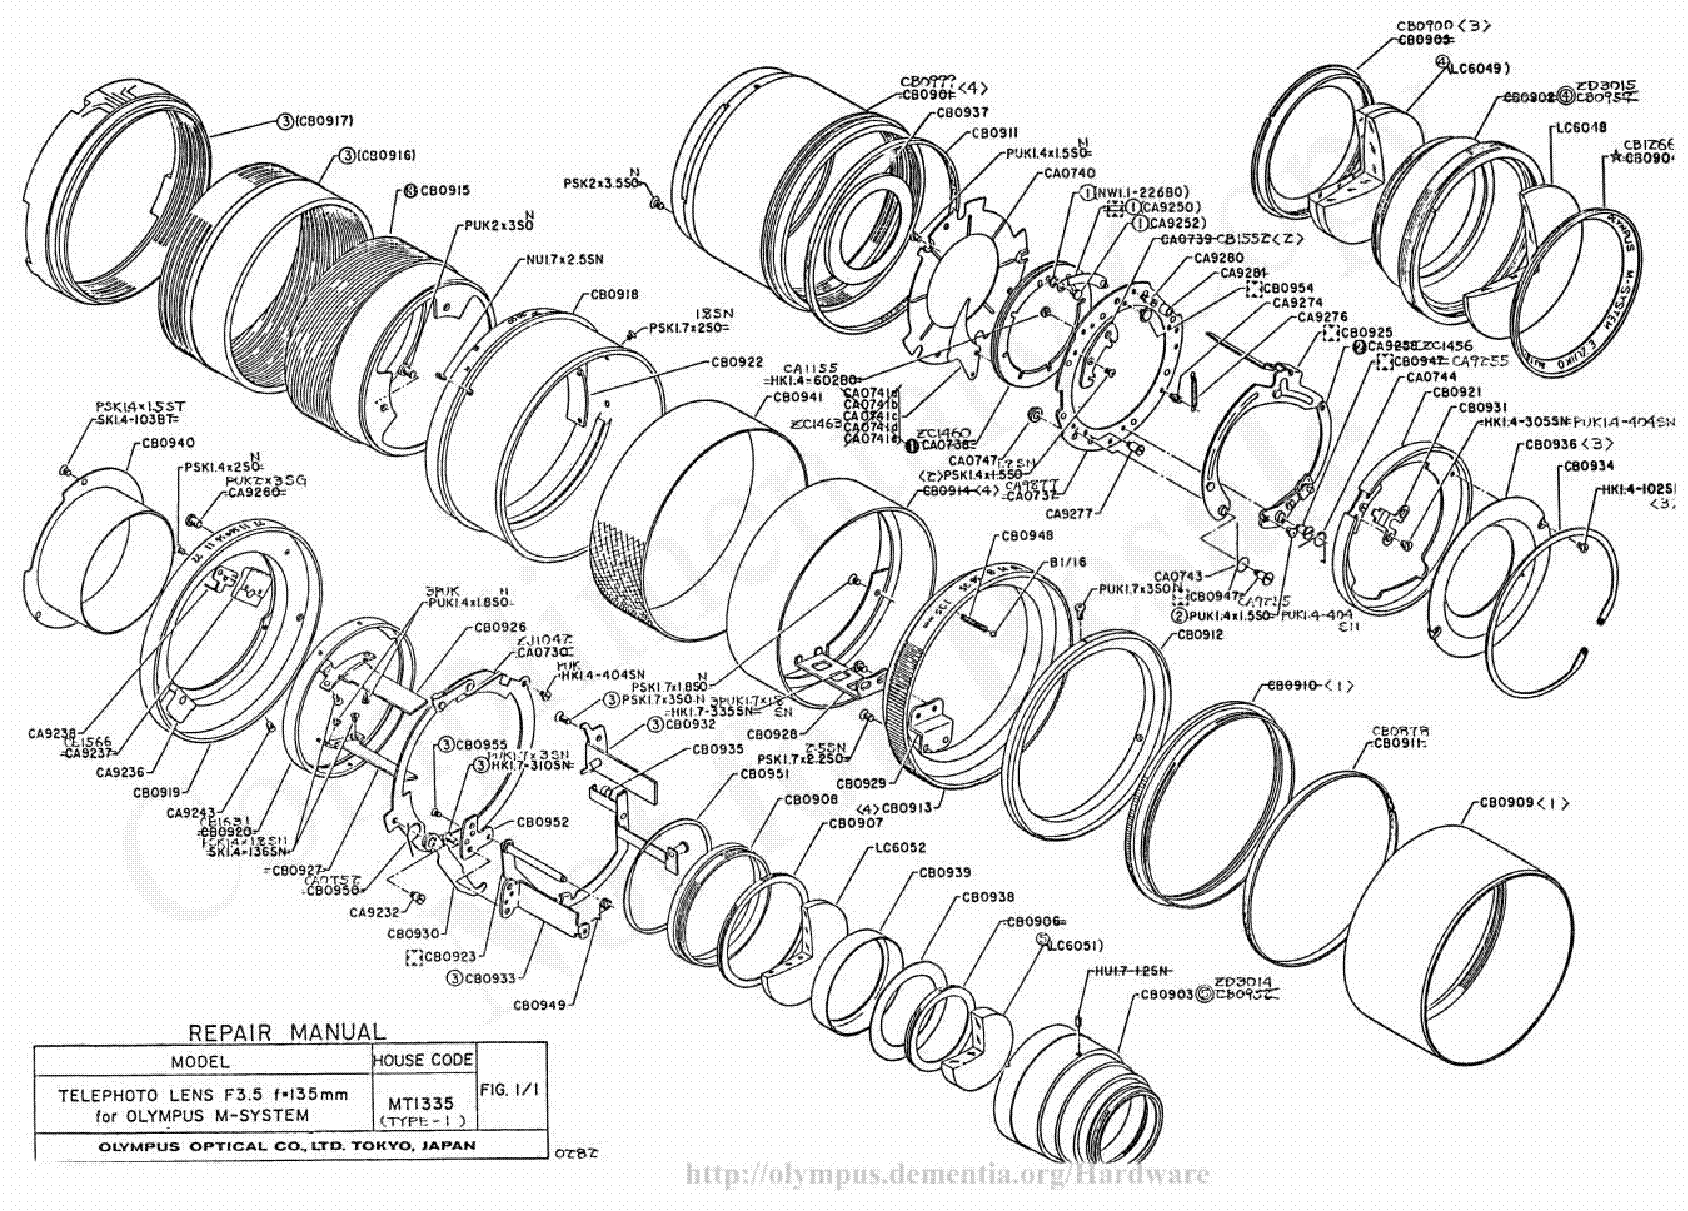 Olympus 135mm F3 5 Exploded Parts Diagram Service Manual